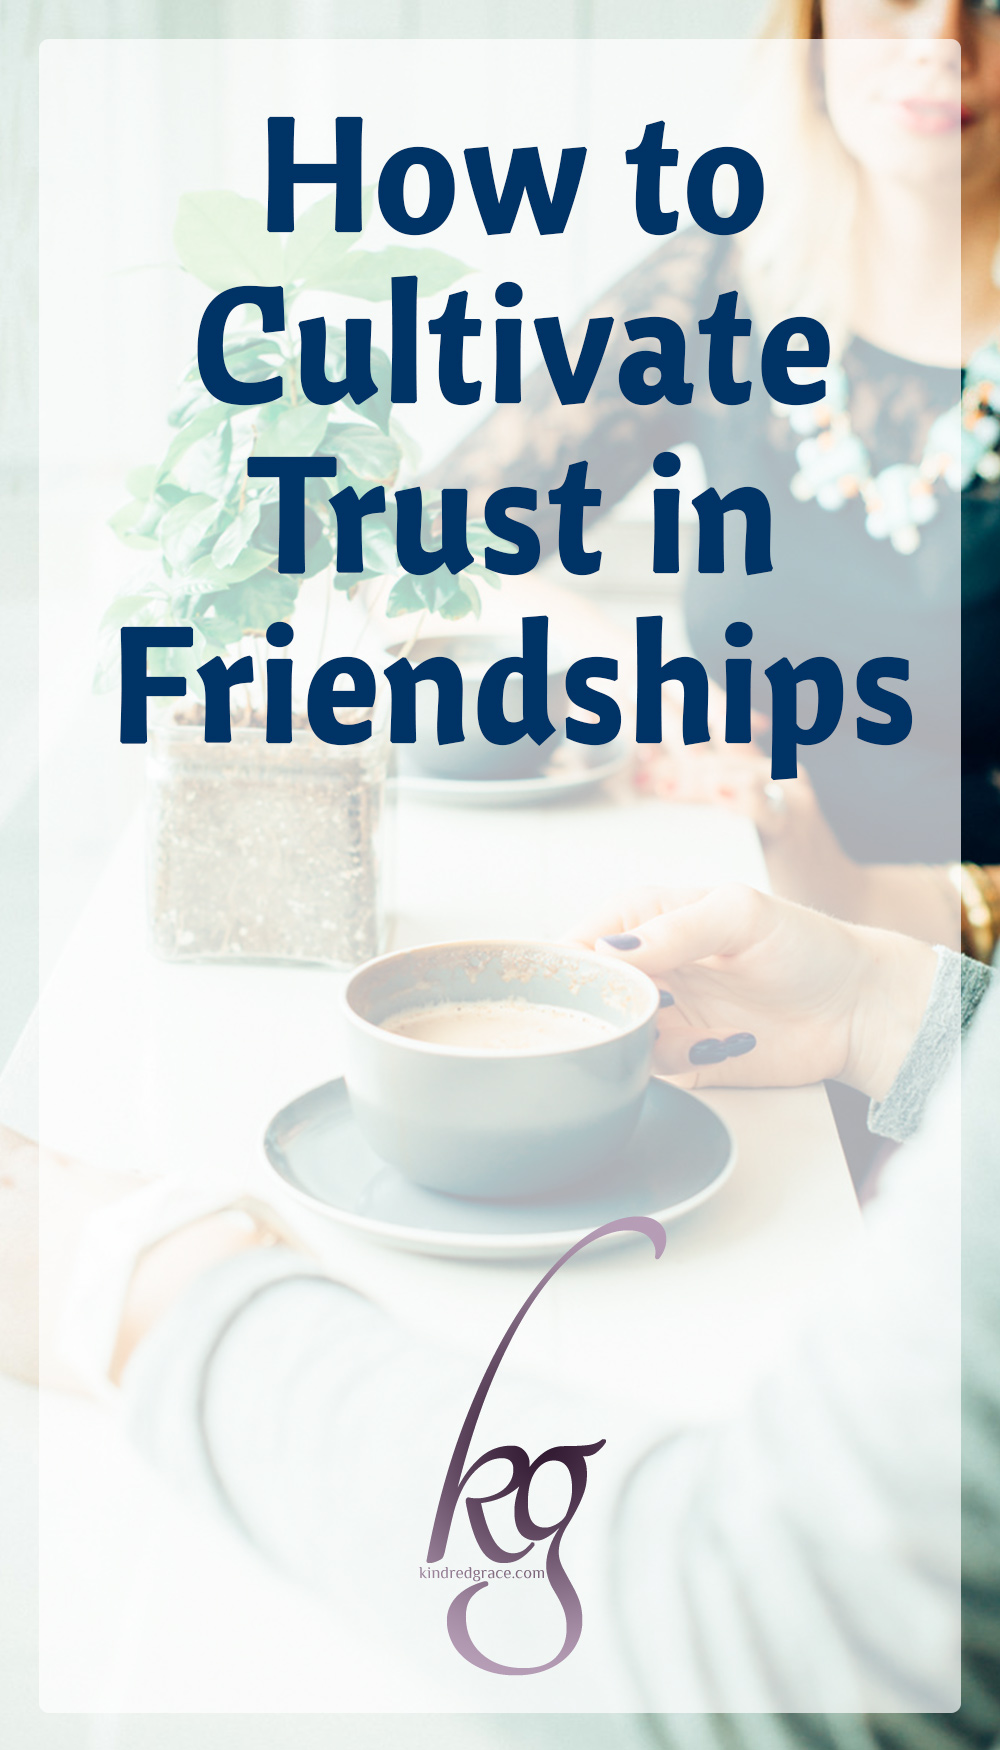 "How to Cultivate Trust in Friendships<span class=""wtr-time-wrap after-title""><span class=""wtr-time-number"">6</span> minute read</span> via @KindredGrace"